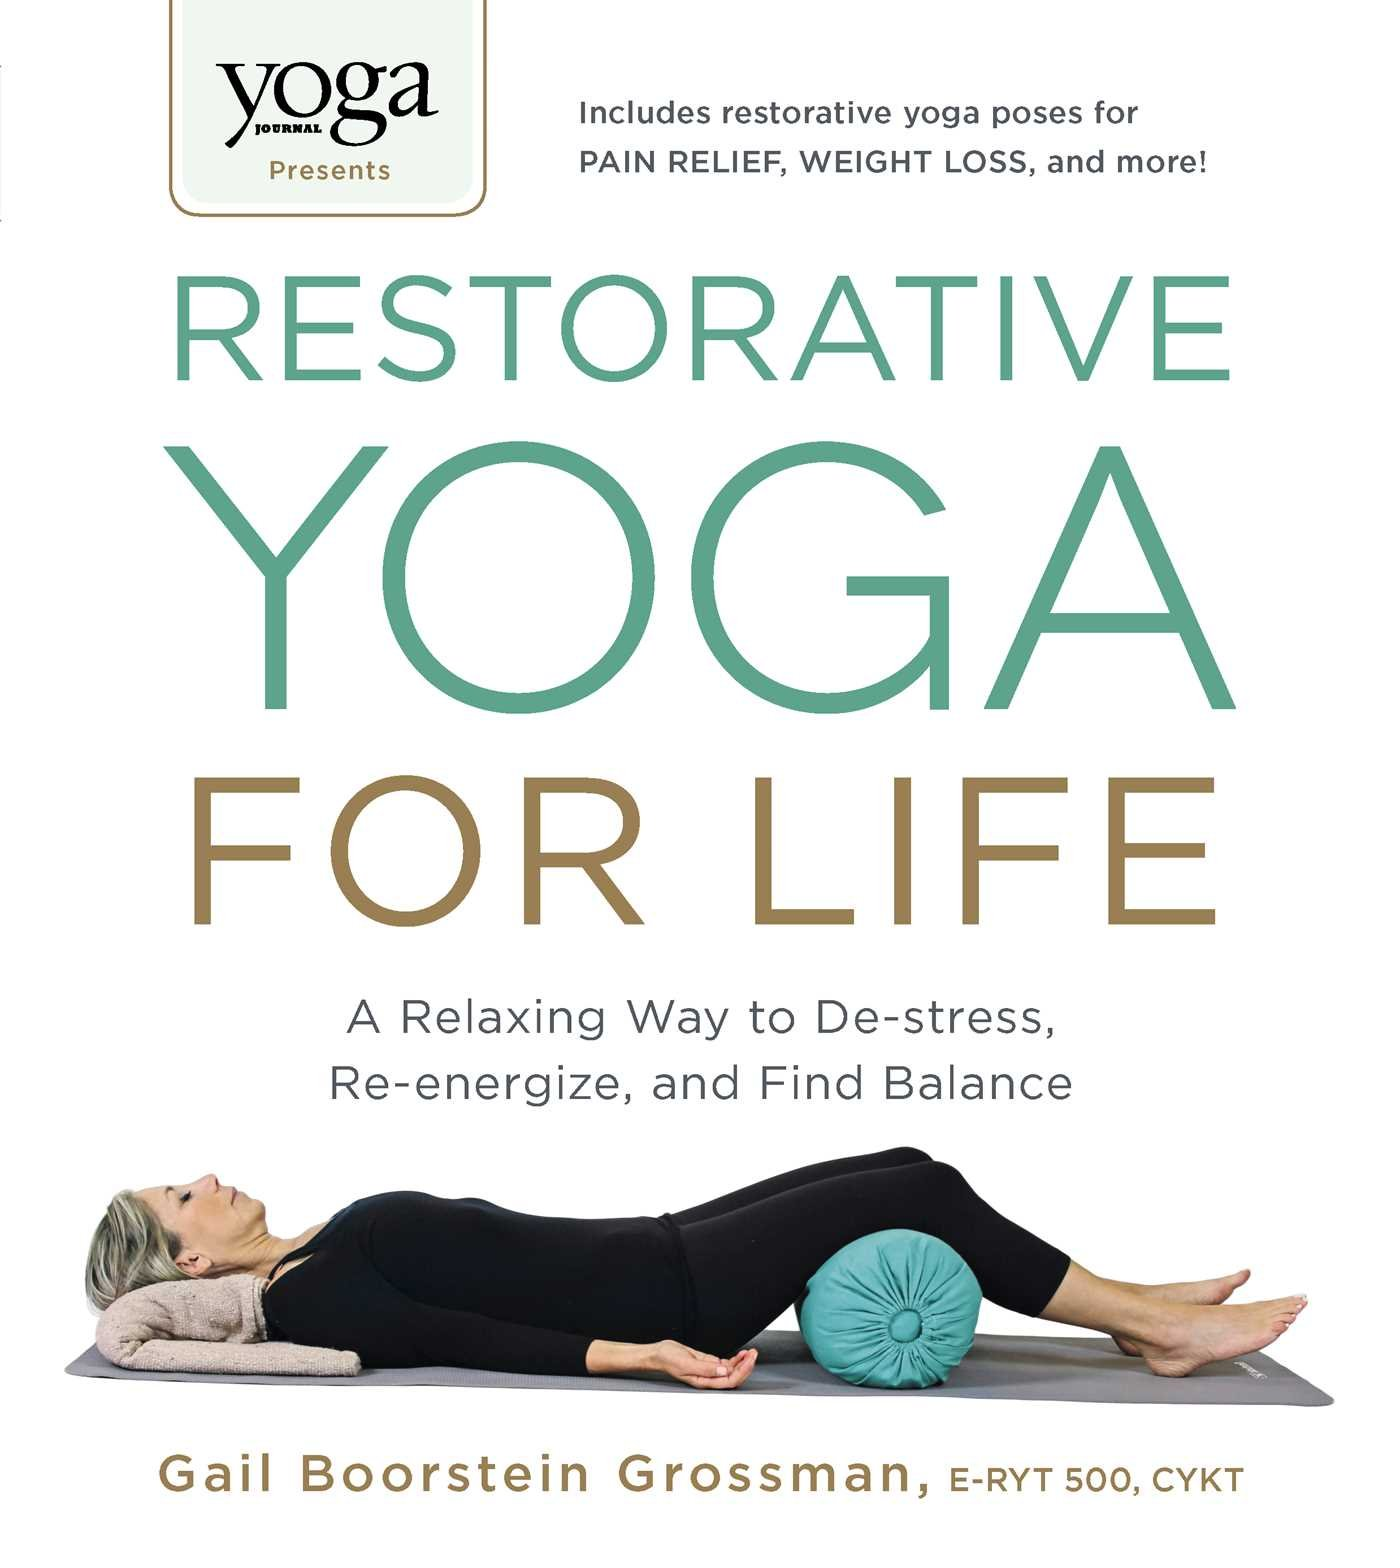 Restorative Yoga for Life - by Gail Boorstein Grossman, E-RYT 500, CYKTA relaxing Way to de-stress, Re-energize, and Find Balance Purchase on Amazon